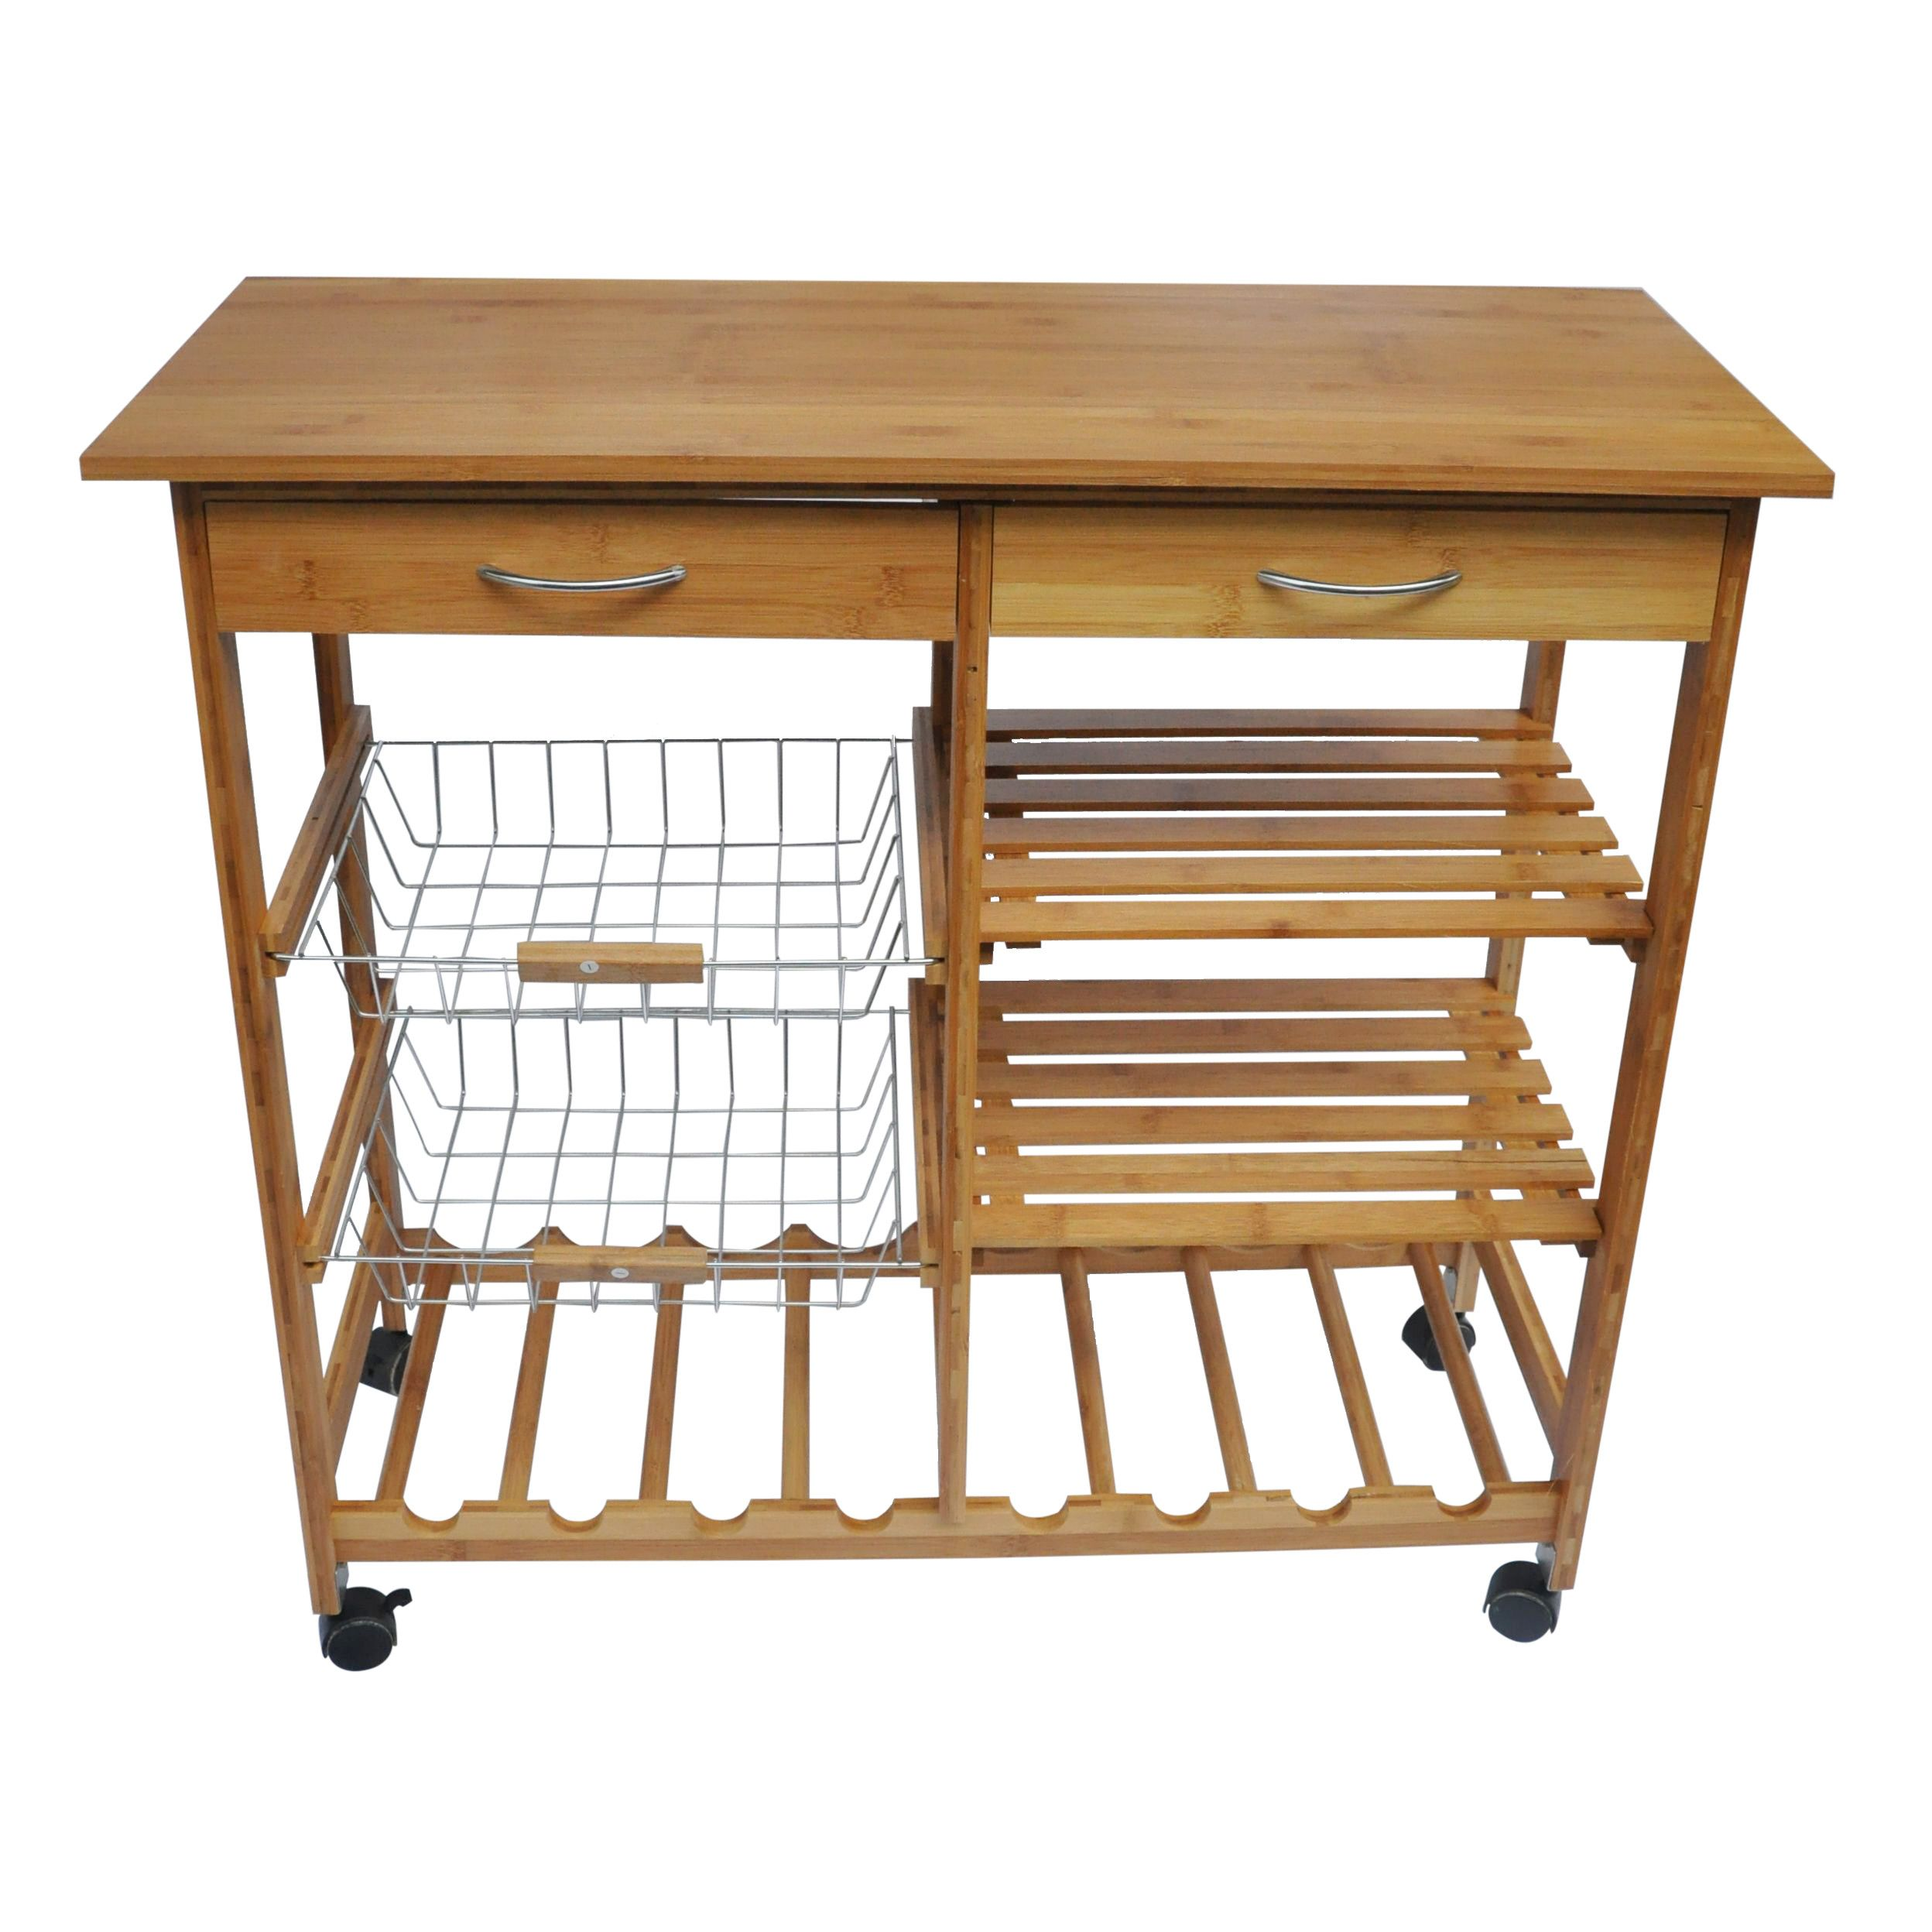 Features: -2 Pull out drawers for storage. -Multiple shelves. -Pull on unique kitchen benches, unique kitchen decor, unique kitchen products, unique kitchen pass throughs, unique kitchen tools, unique kitchen cabinets, unique kitchen storage, unique kitchen chairs, unique kitchen brushes, unique kitchen lights, unique kitchen supplies, unique kitchen fans, unique kitchen islands on wheels, unique kitchen tables, unique kitchen displays, unique kitchen signs, unique kitchen shelving, unique kitchen appliances, unique kitchen counters, unique kitchen equipment,